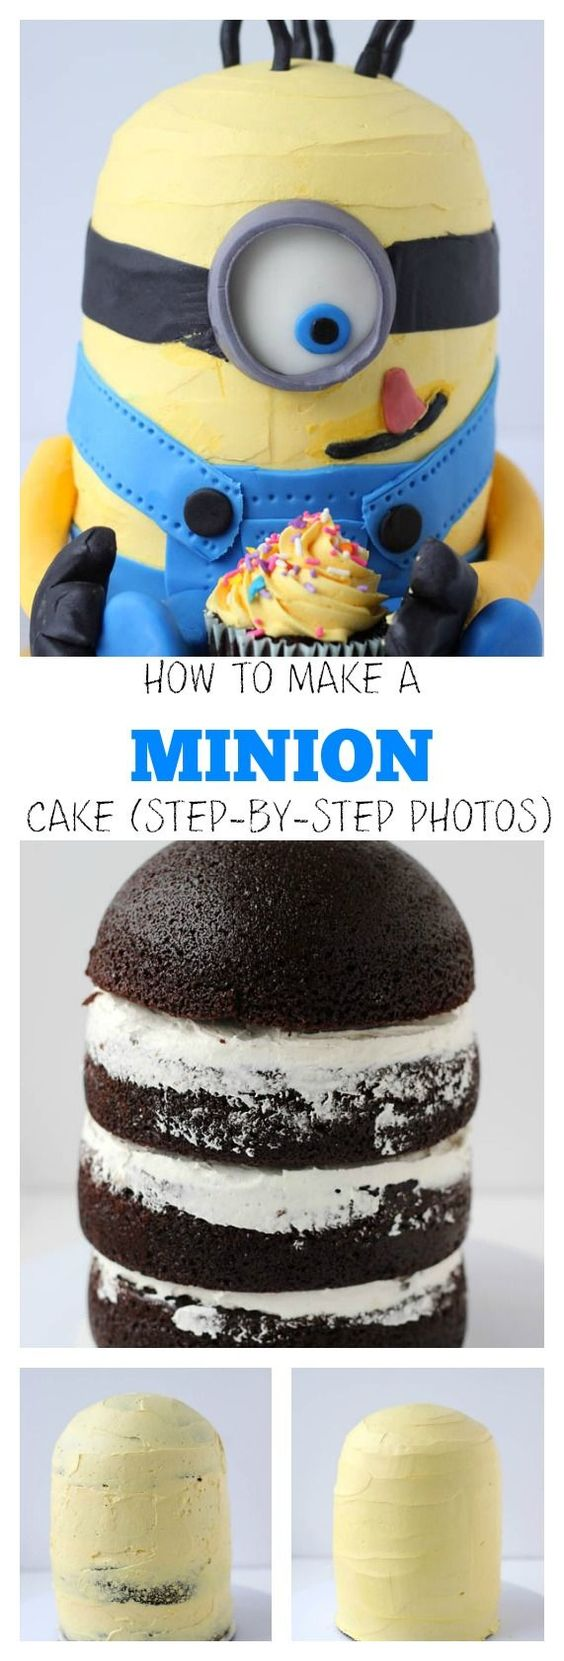 HOW TO MAKE A MINION CAKE ~ with step-by-step photos. http ...